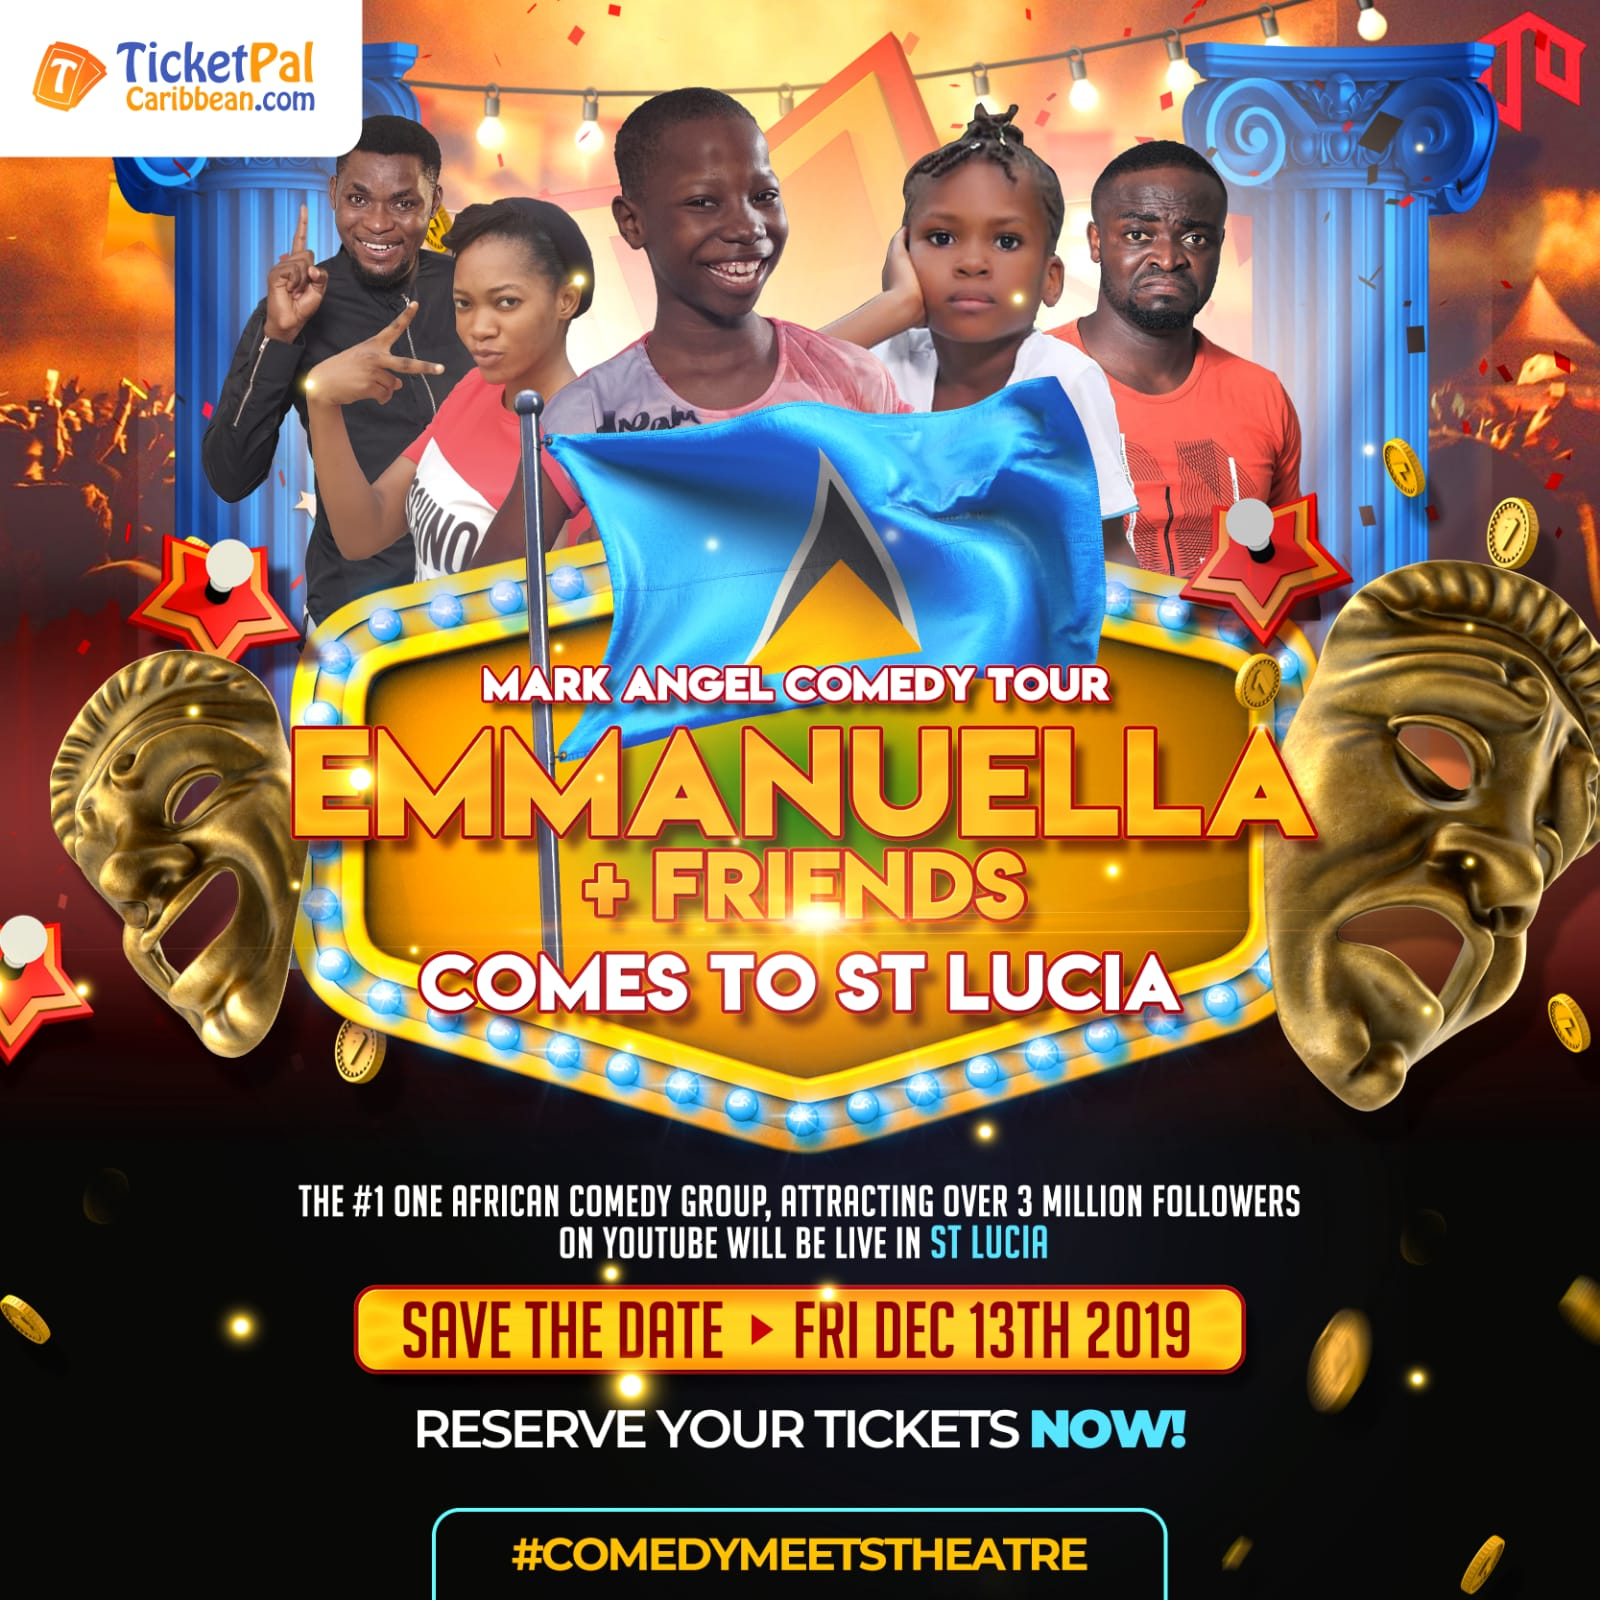 Emanuella & Friends Comes to St. Lucia